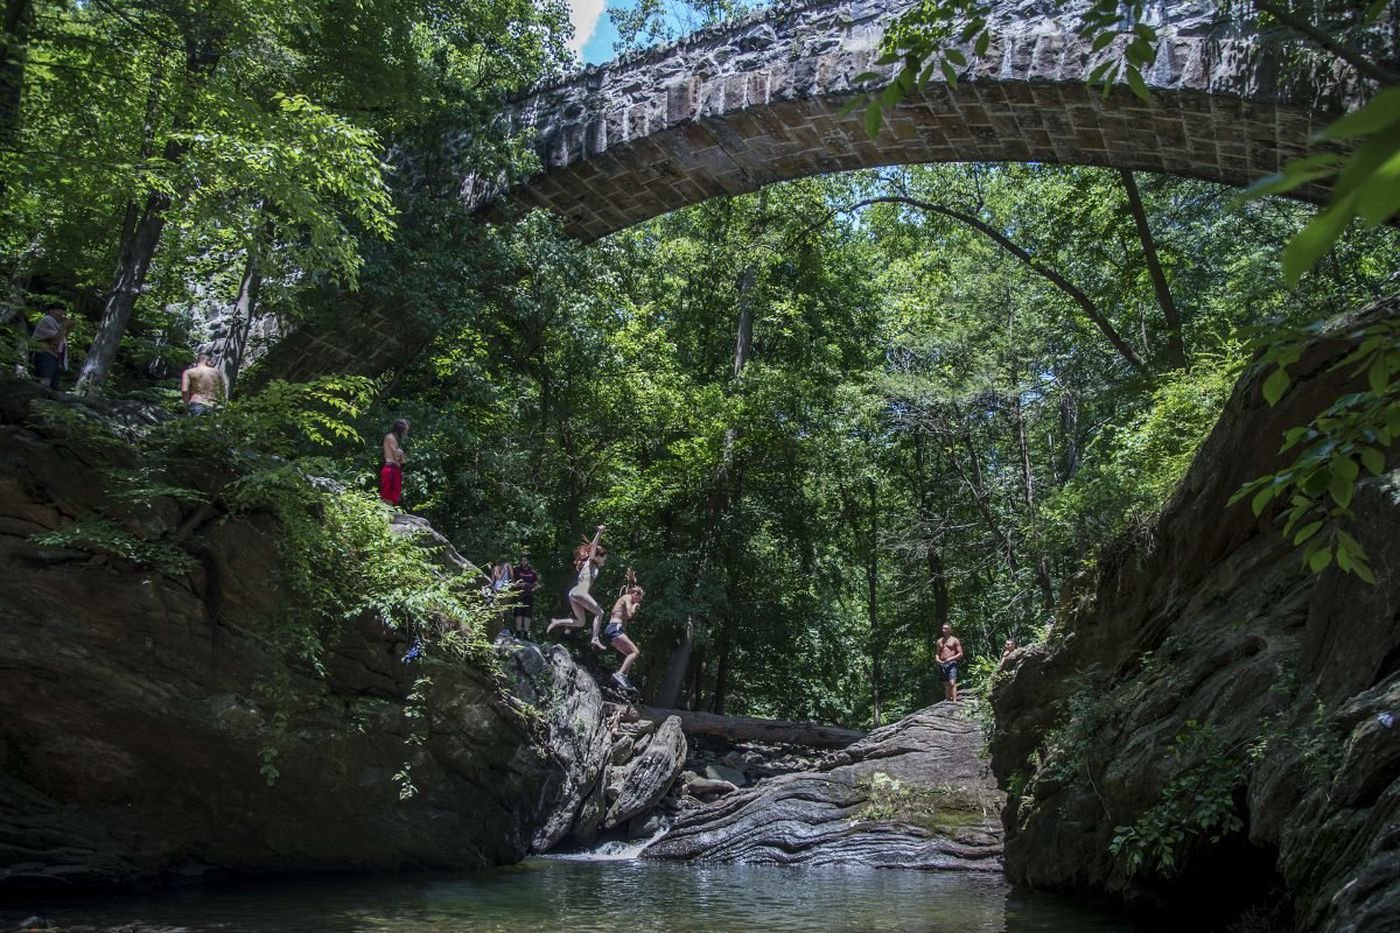 Philadelphia to close Devil's Pool on weekends to 'ensure public safety'